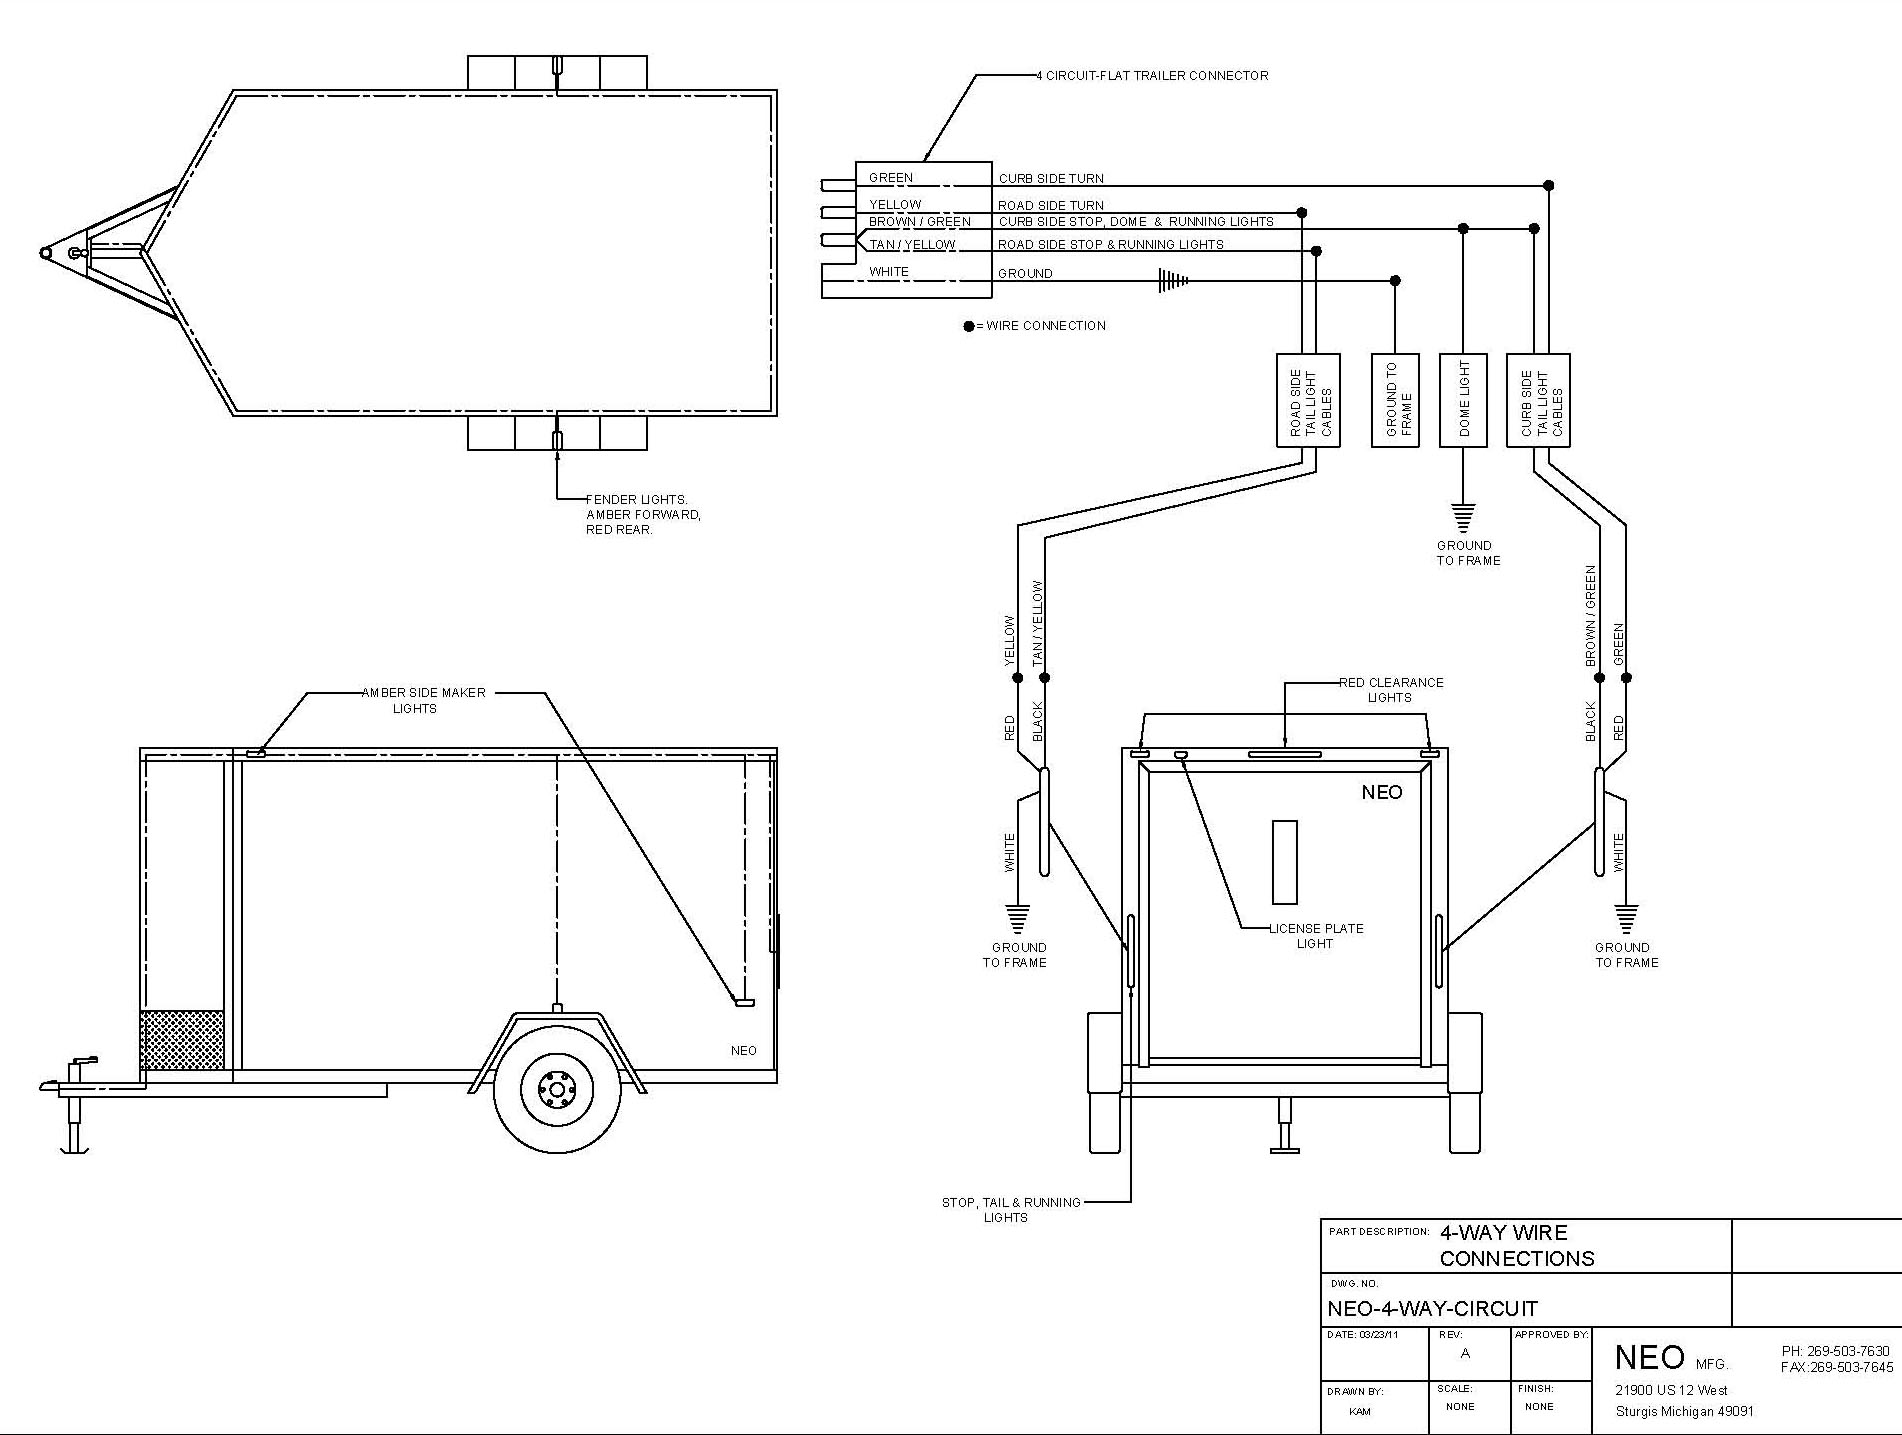 gooseneck trailer wiring diagram with Sundowner Horse Trailer Wiring Diagram on 6815 Trailer Wiring Diagram Truck Side additionally 2014 Ford F350 Trailor Hitch Diagram together with Fabulous Soldering Diagram Image Ideas together with Car Trailer Wiring Diagram Uk as well Industrial Power Schematic.